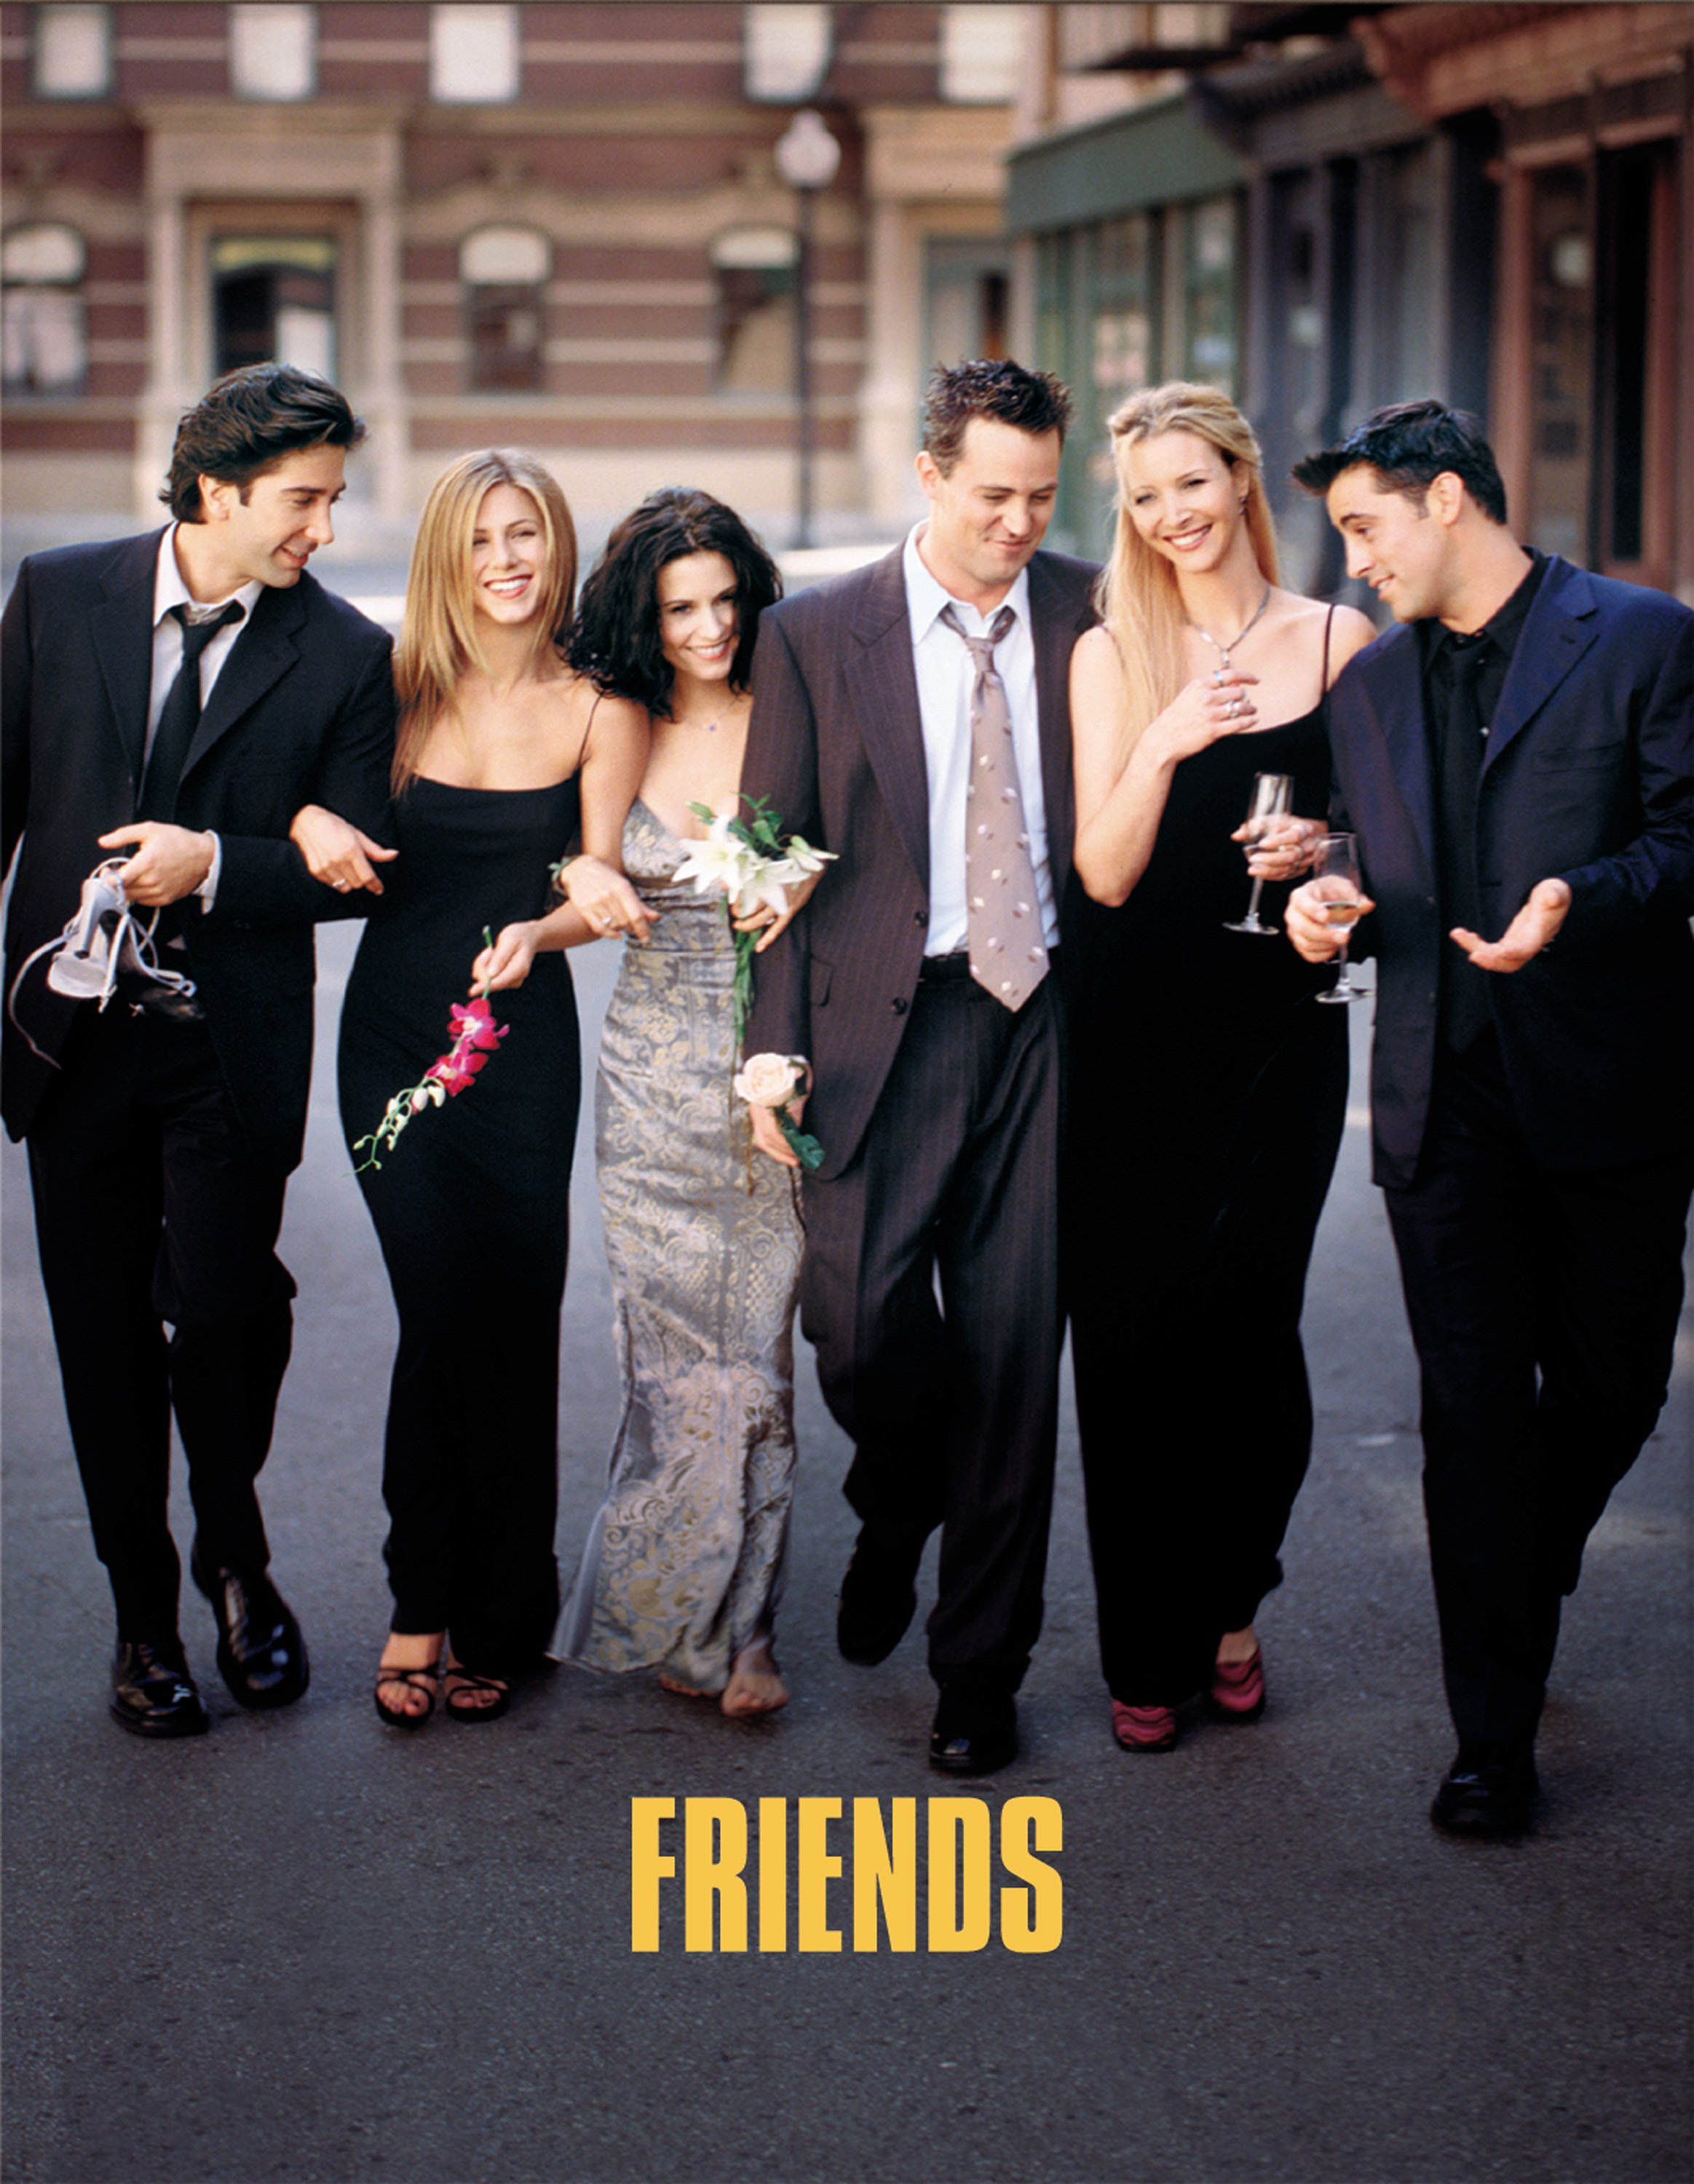 Friends-Darsteller, David Schwimmer, Jennifer Aniston, Courteney Cox, Matthew Perry, Lisa Kudrow und Matt Leblanc (von links nach rechts) | Quelle: Getty Images